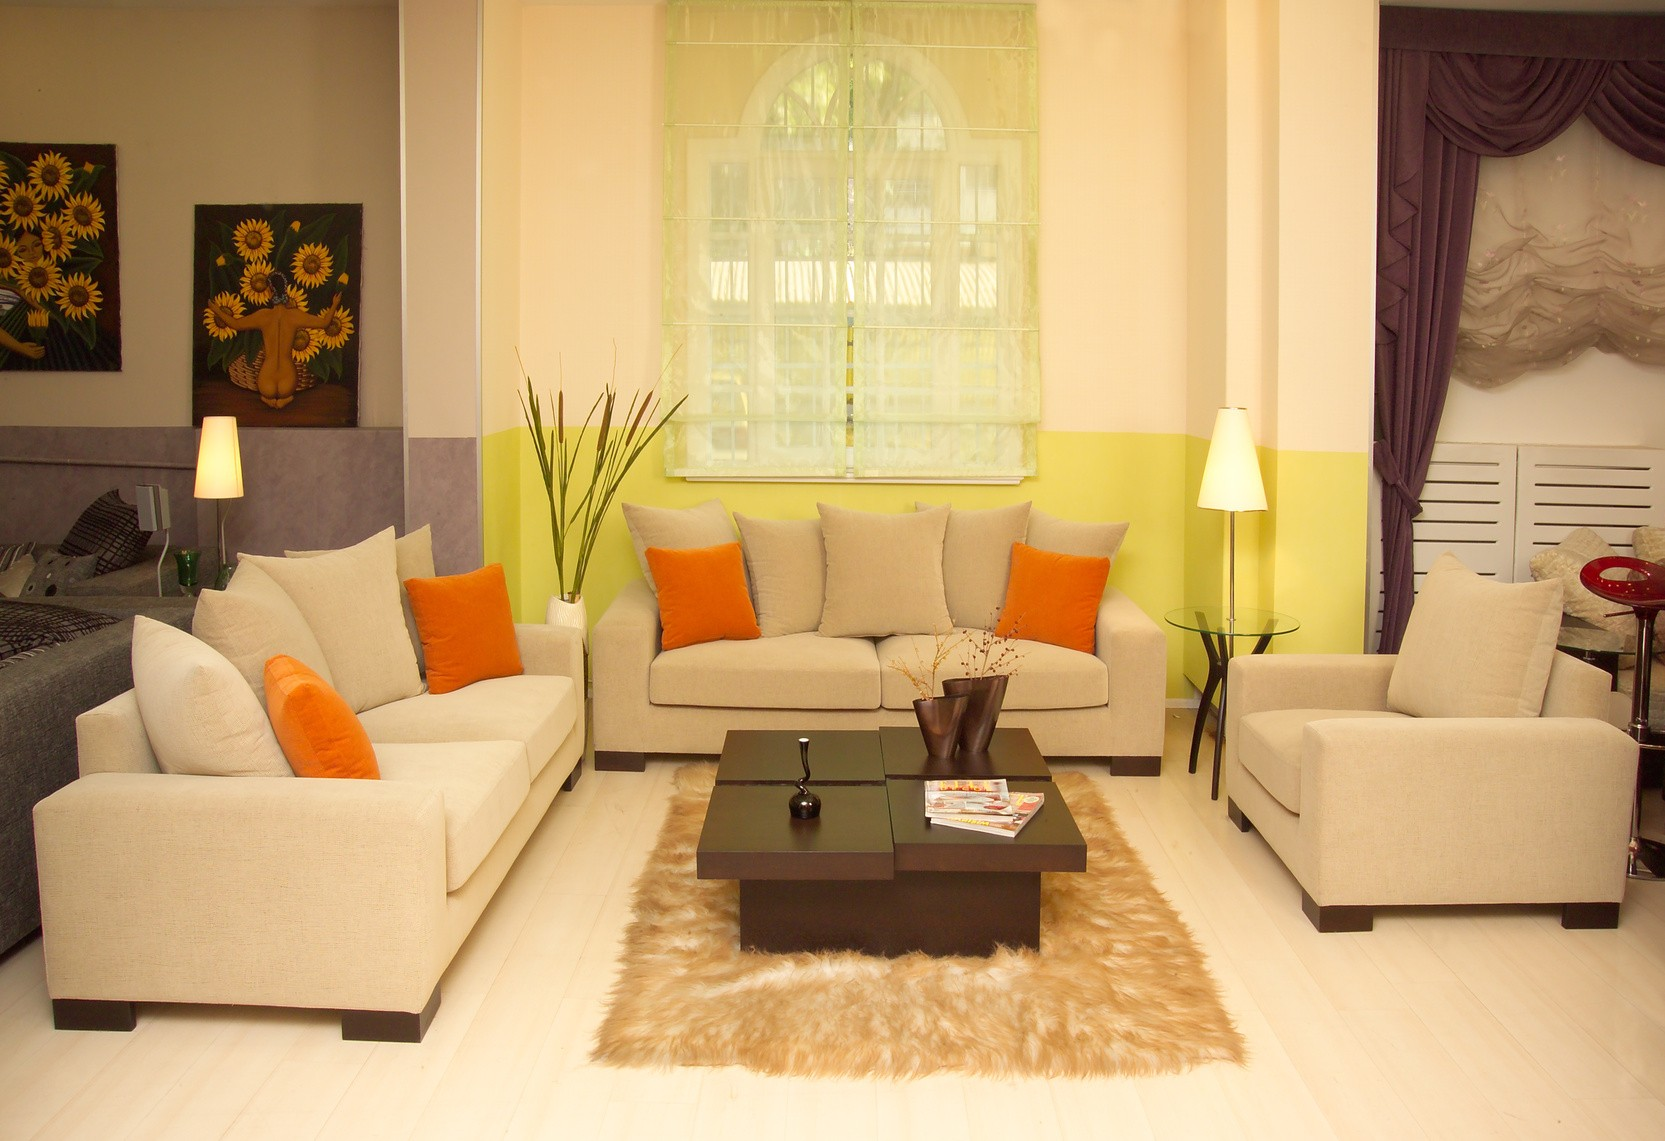 feng shui 101 feel good home design whether